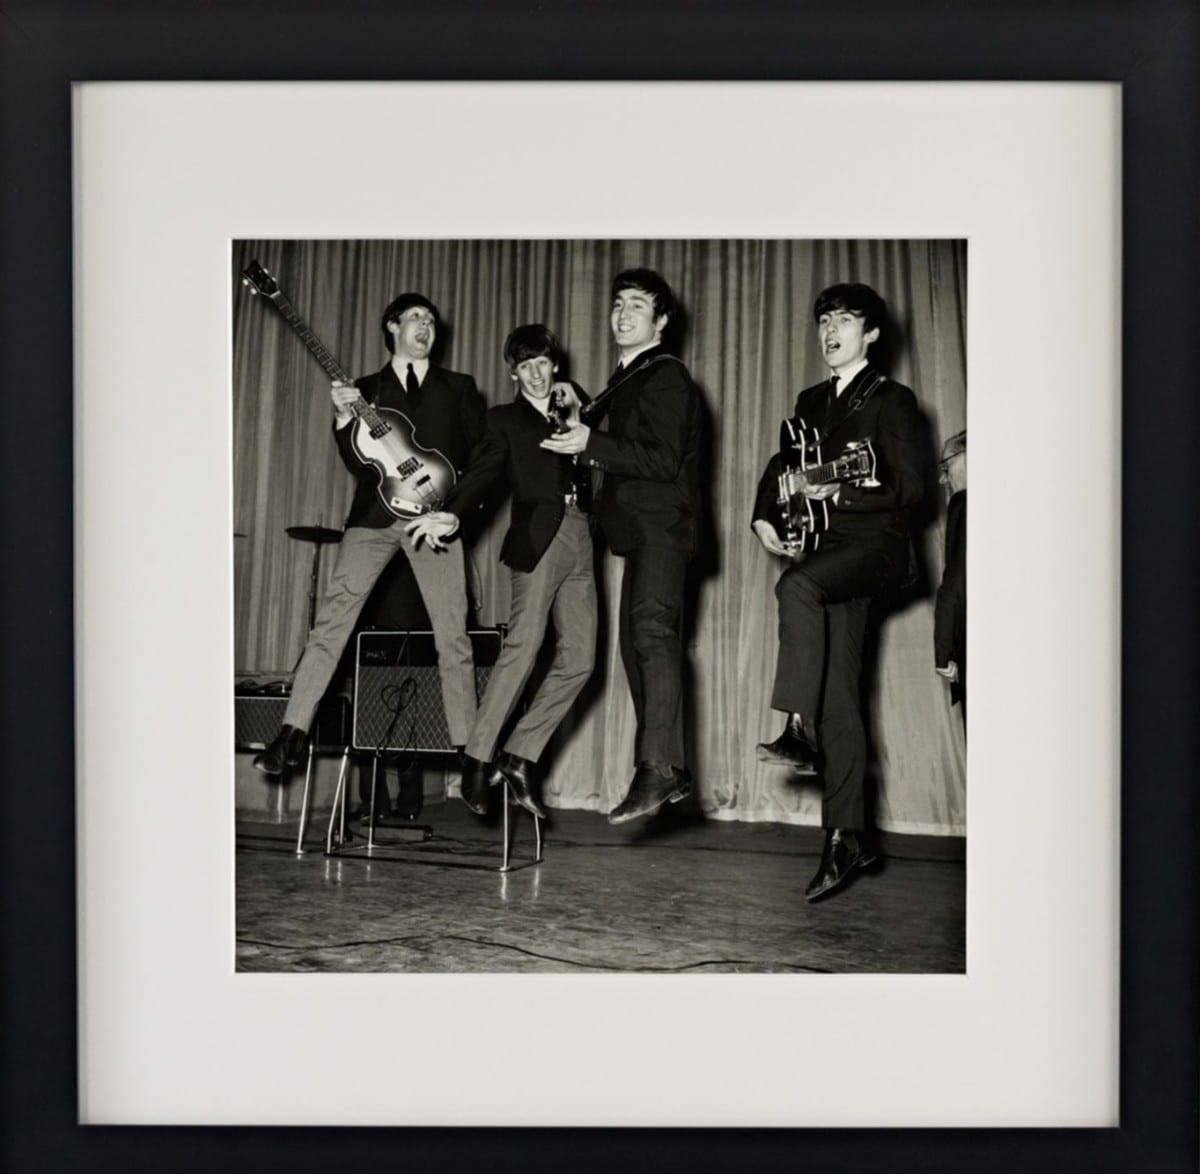 Hulton Archive, Leaping Beatles, gelatin silver print on archival fiber paper, 1963 ©Ralph Lauren Home and Getty Images